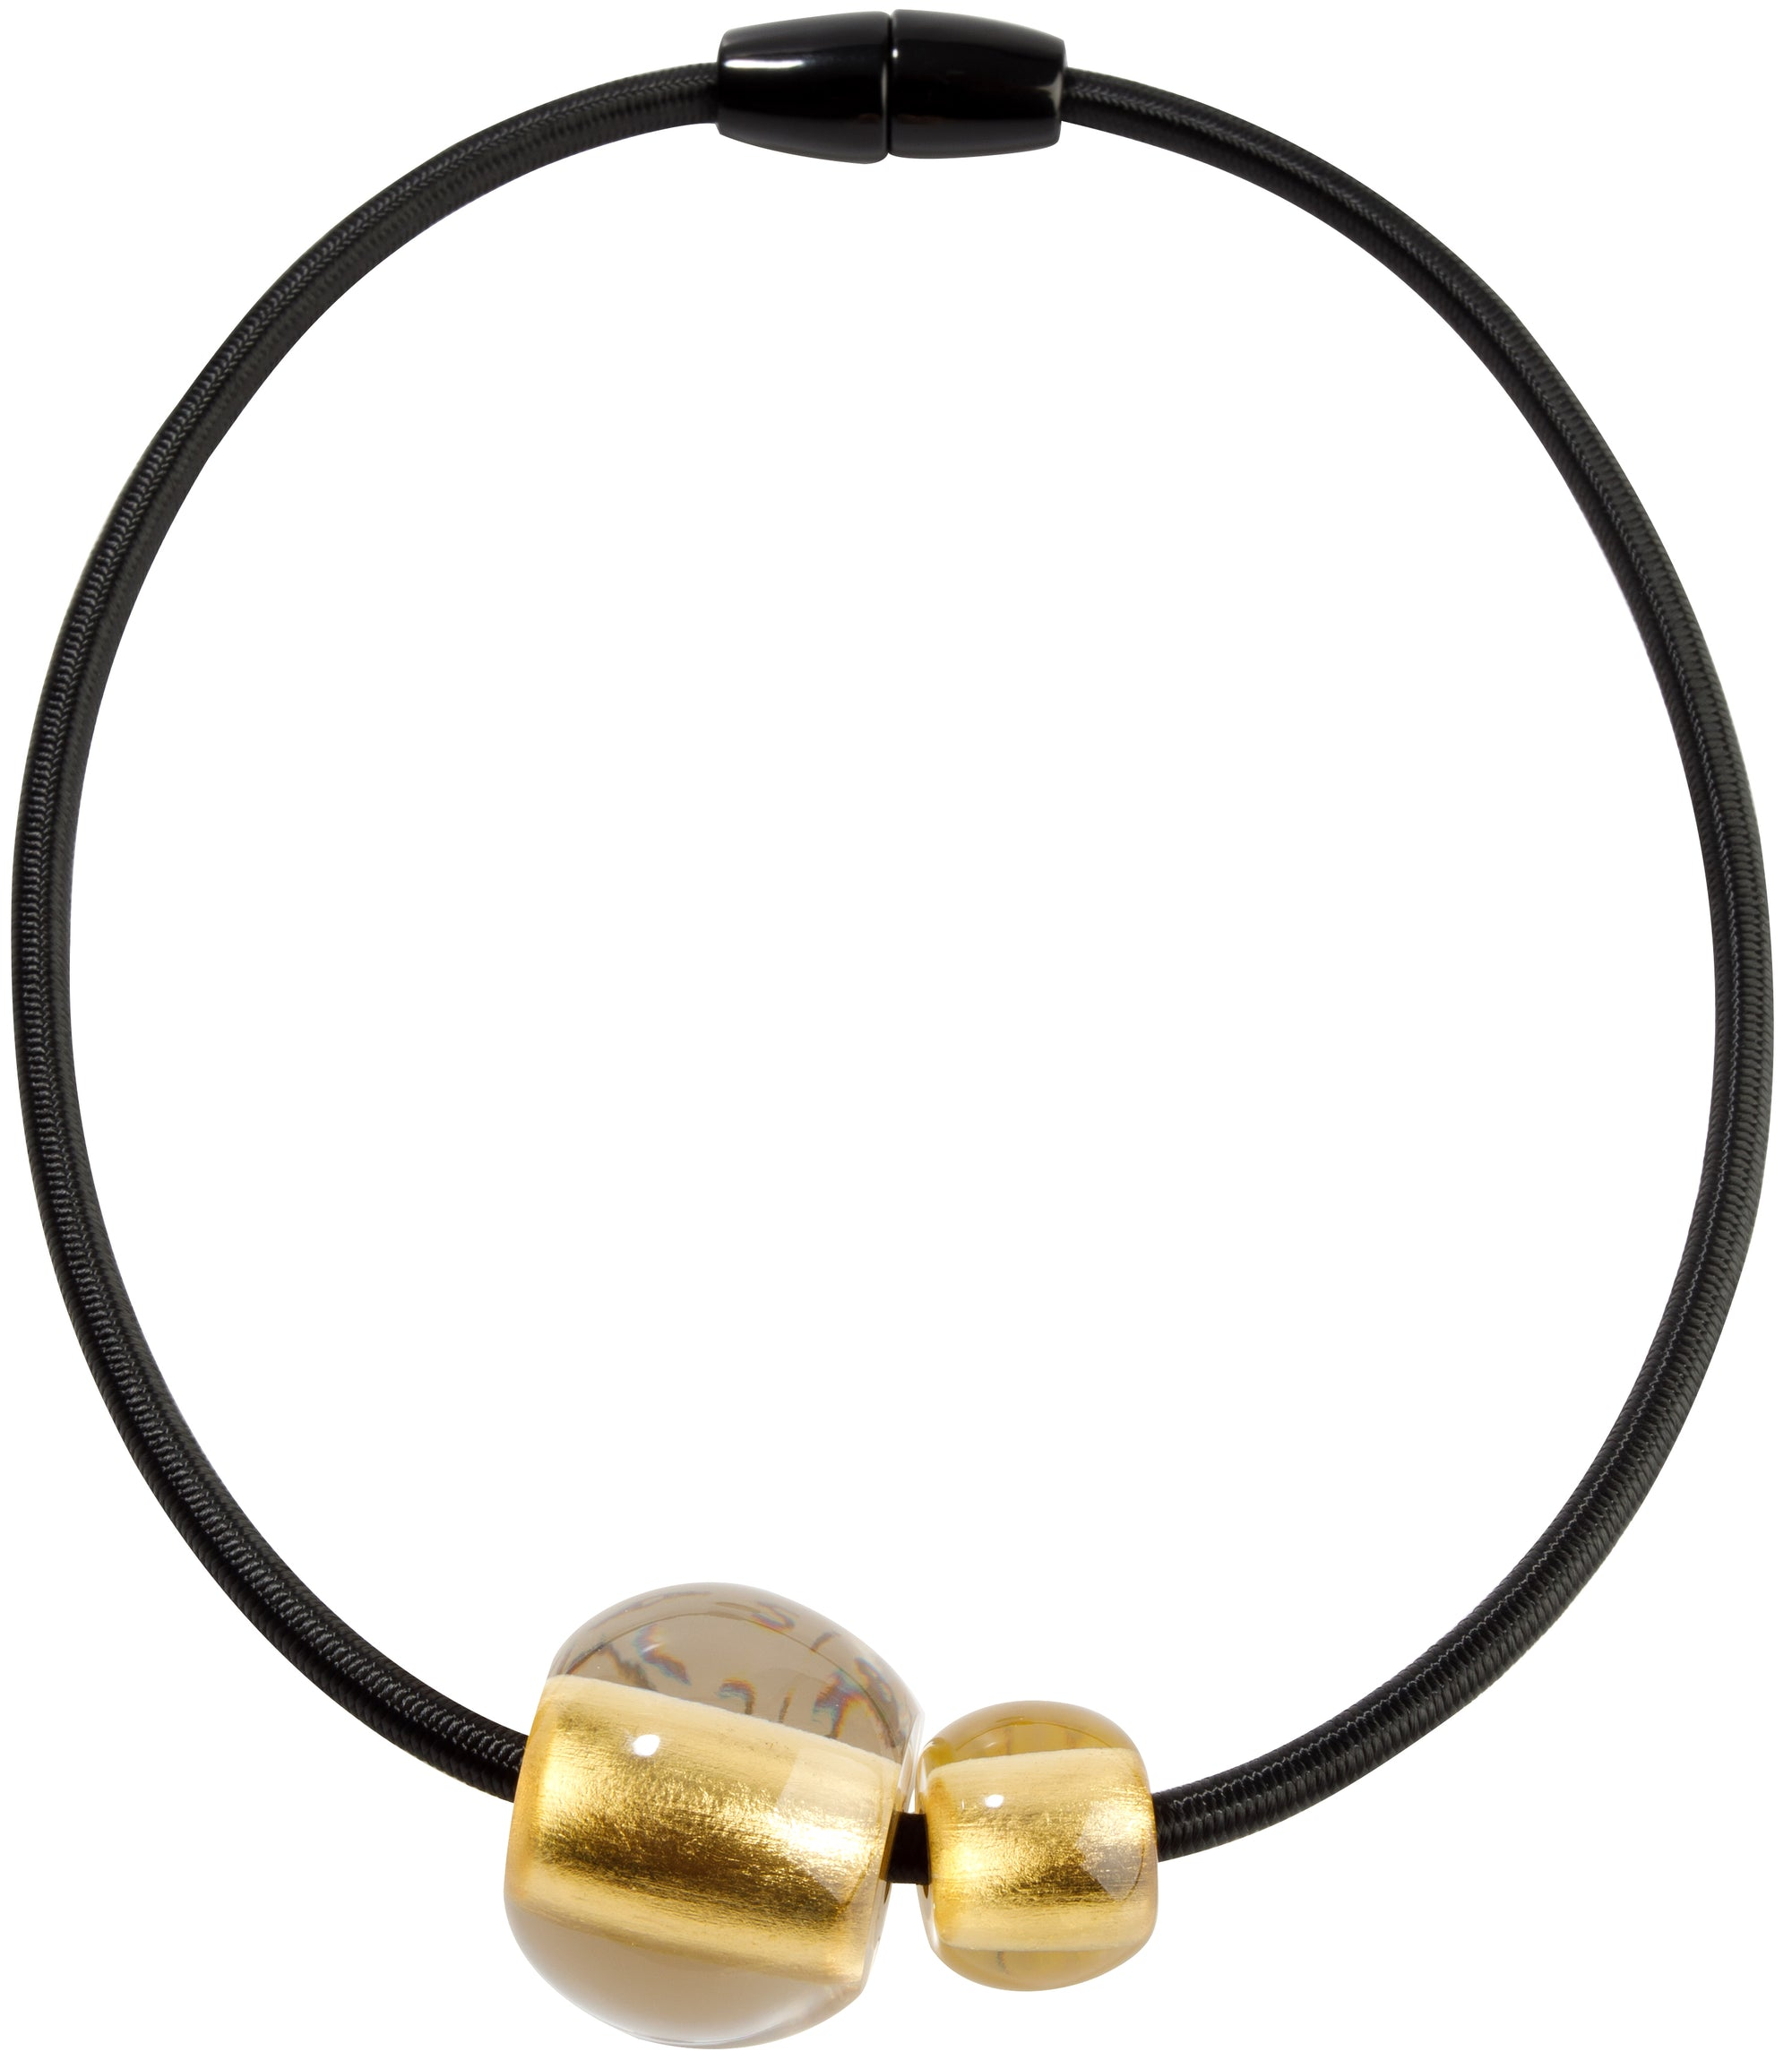 Zsiska Precious Gold Bead Necklace